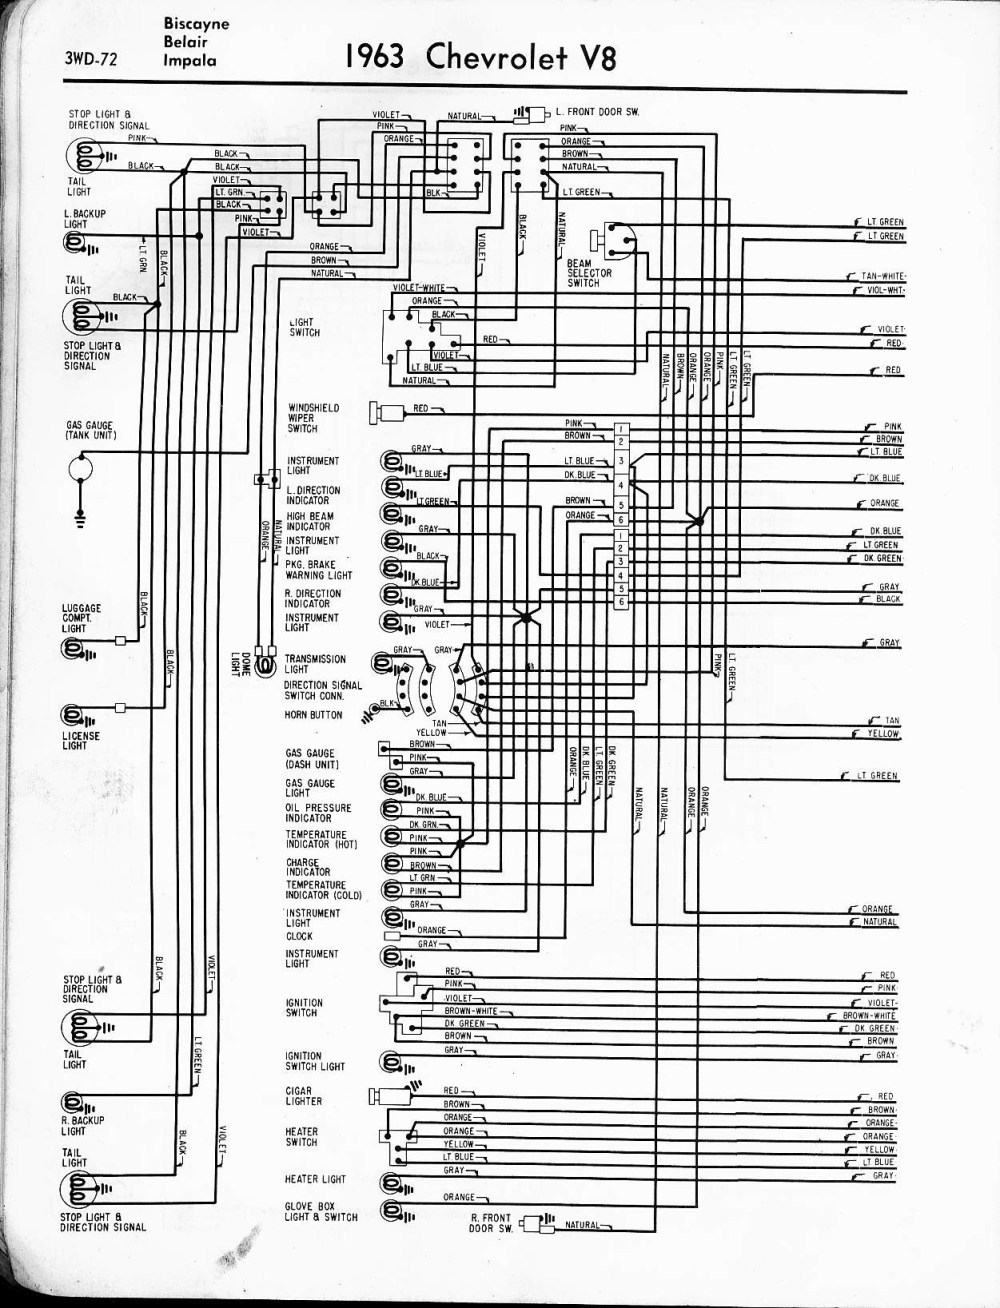 medium resolution of fuse block diagram for 1963 impala wiring diagram sheet 1964 impala fuse panel diagram